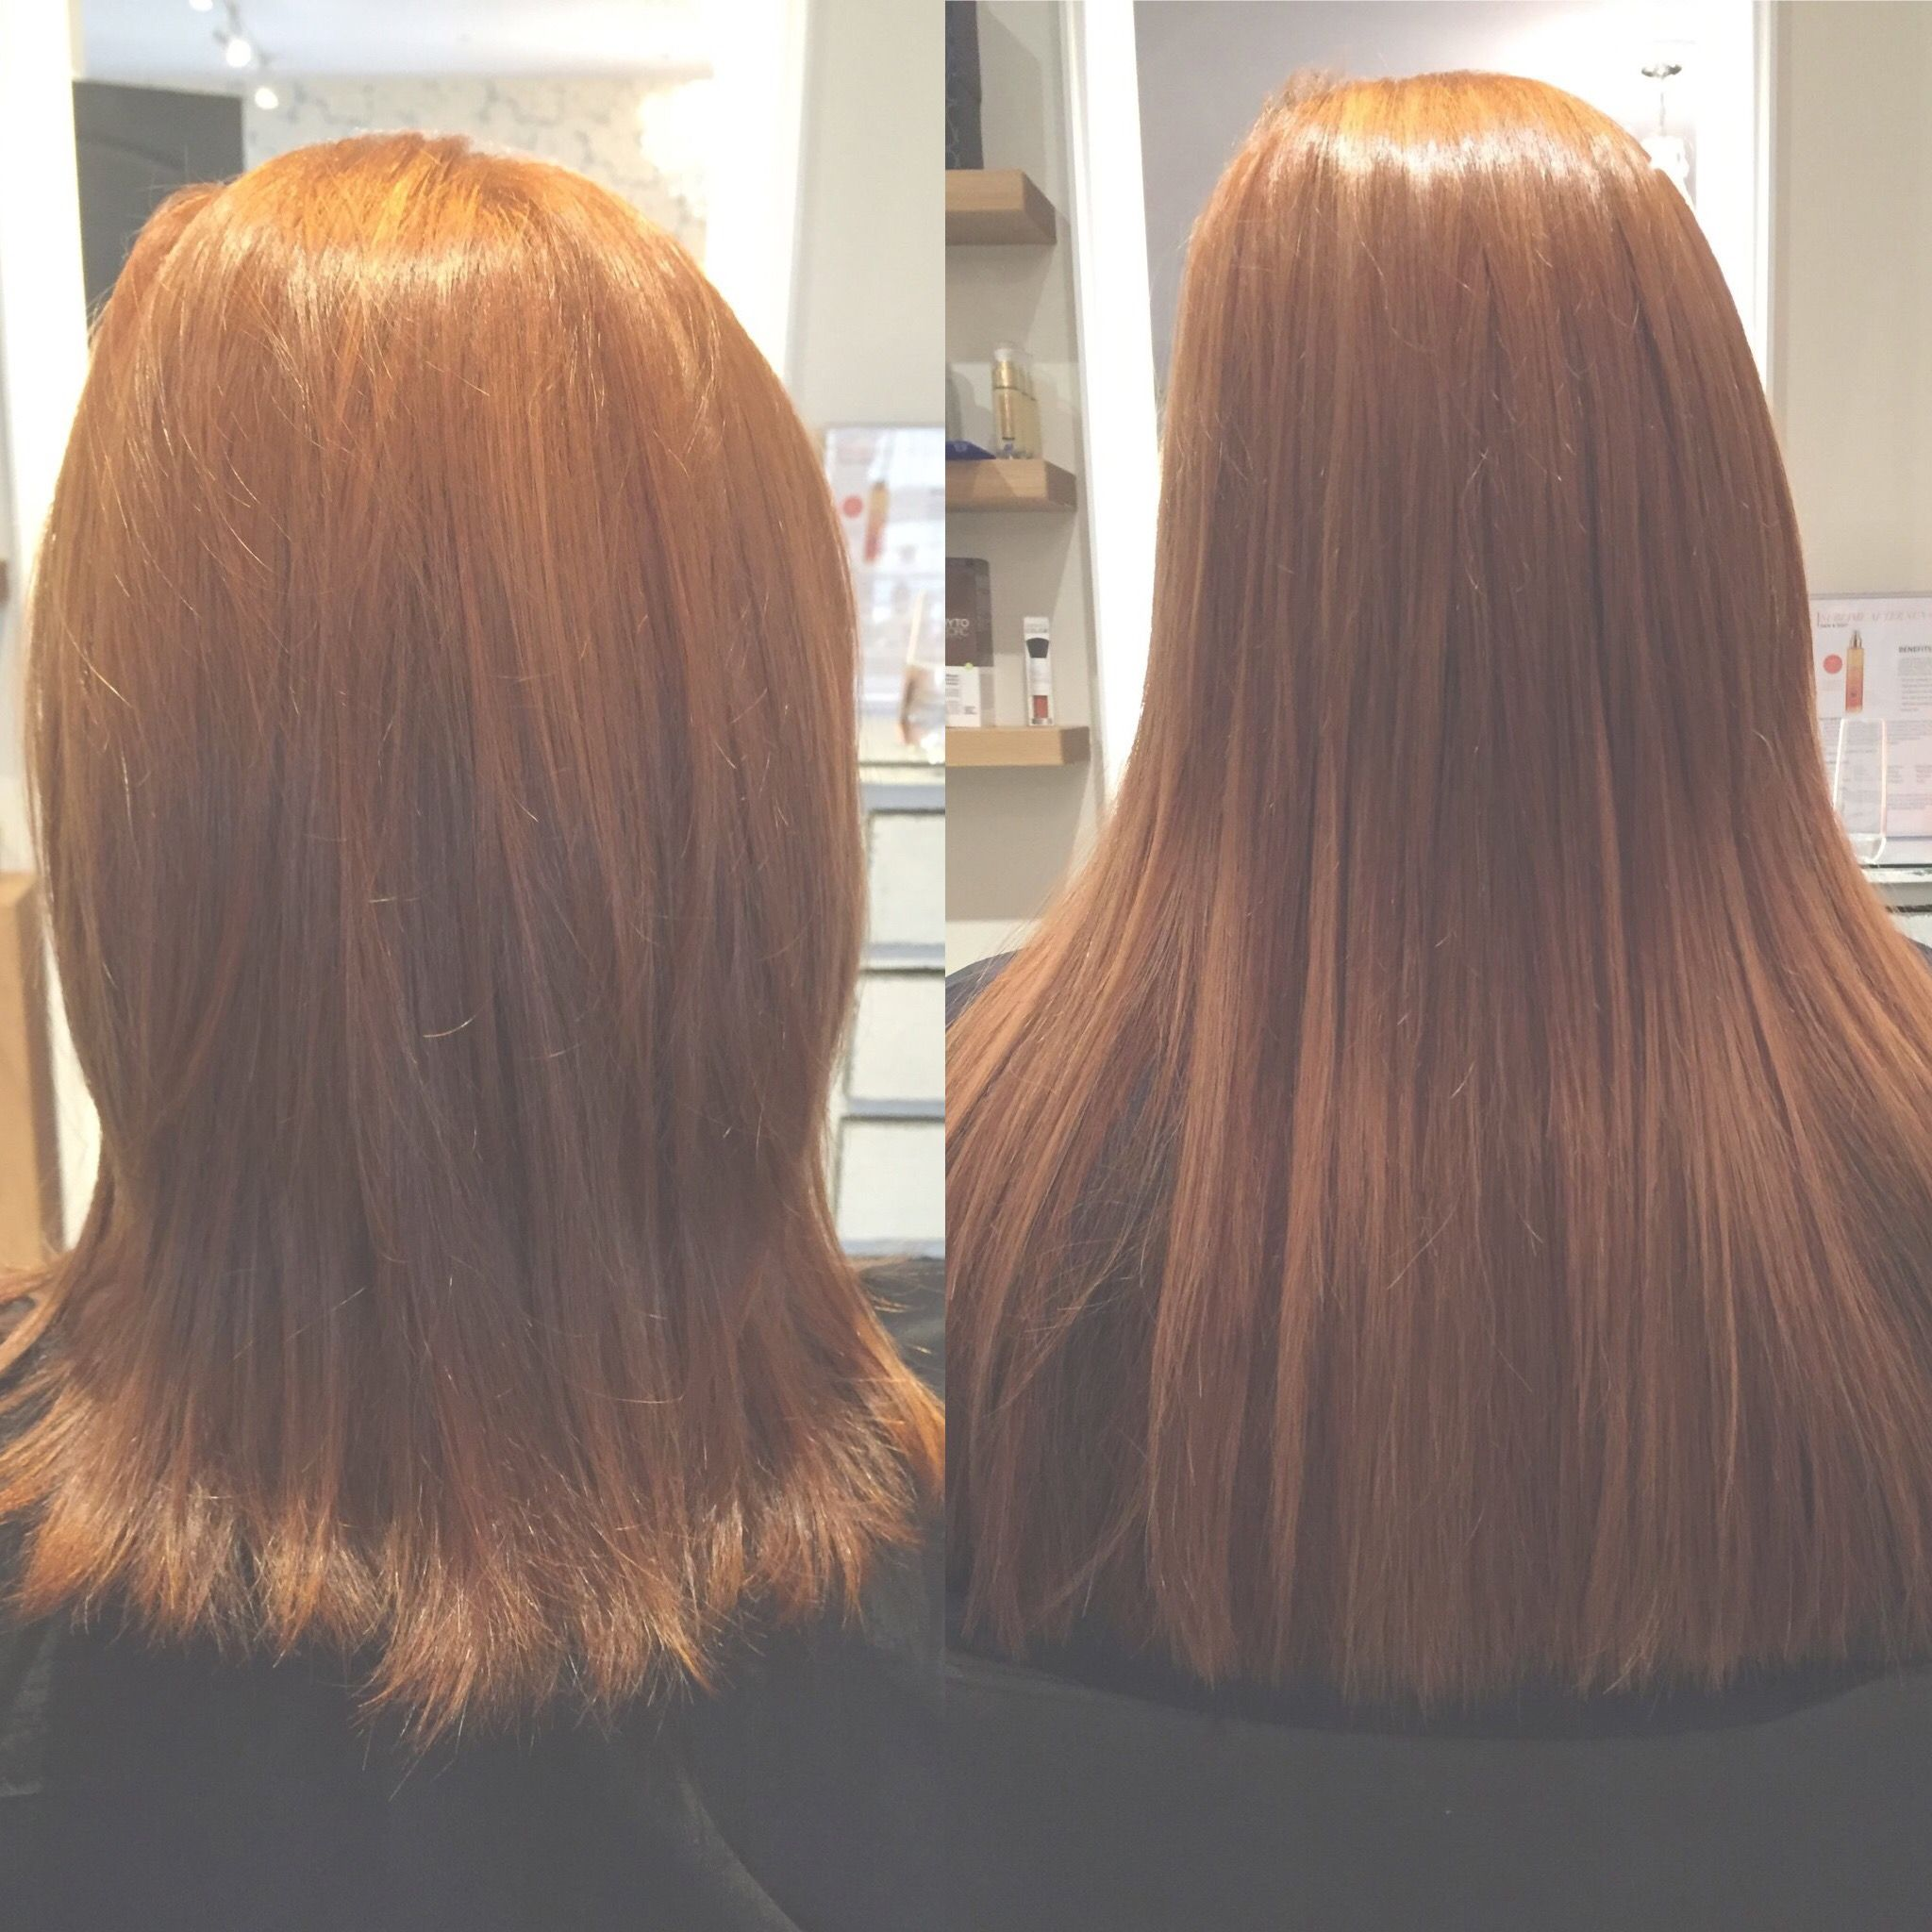 Hair Extensions Hair Inspiration From Janet St Paul Pinterest